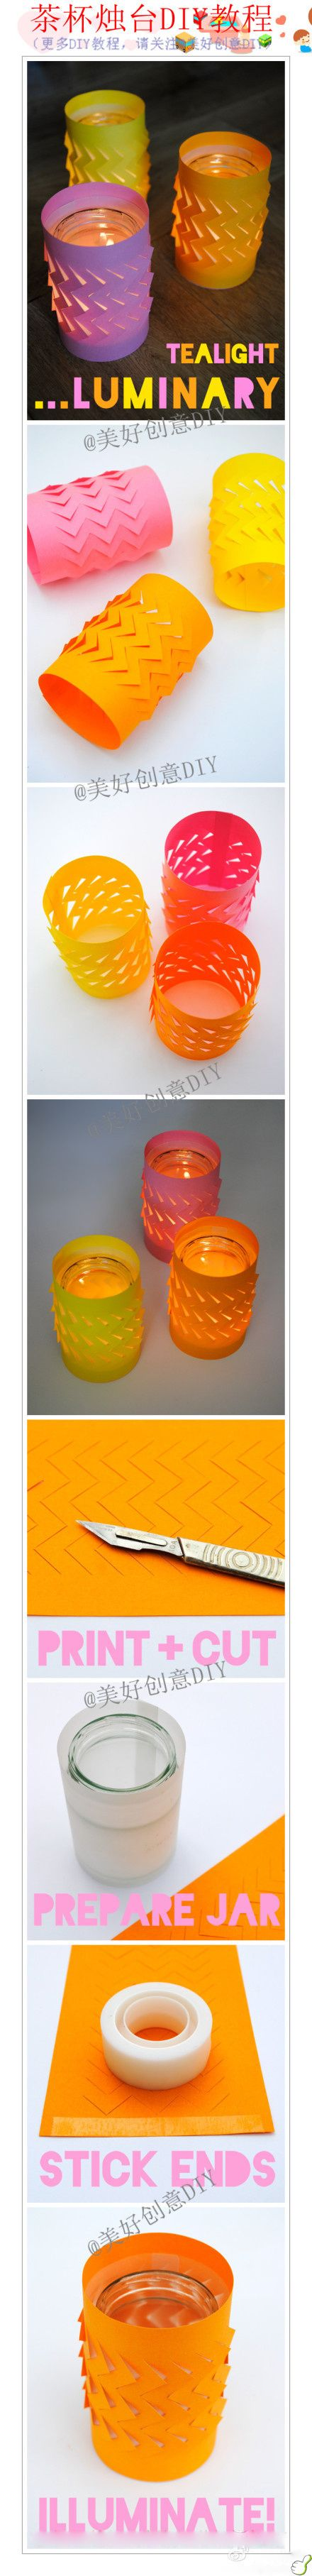 Candle light in jar!  Add paper with creative cutting to enhance the look!